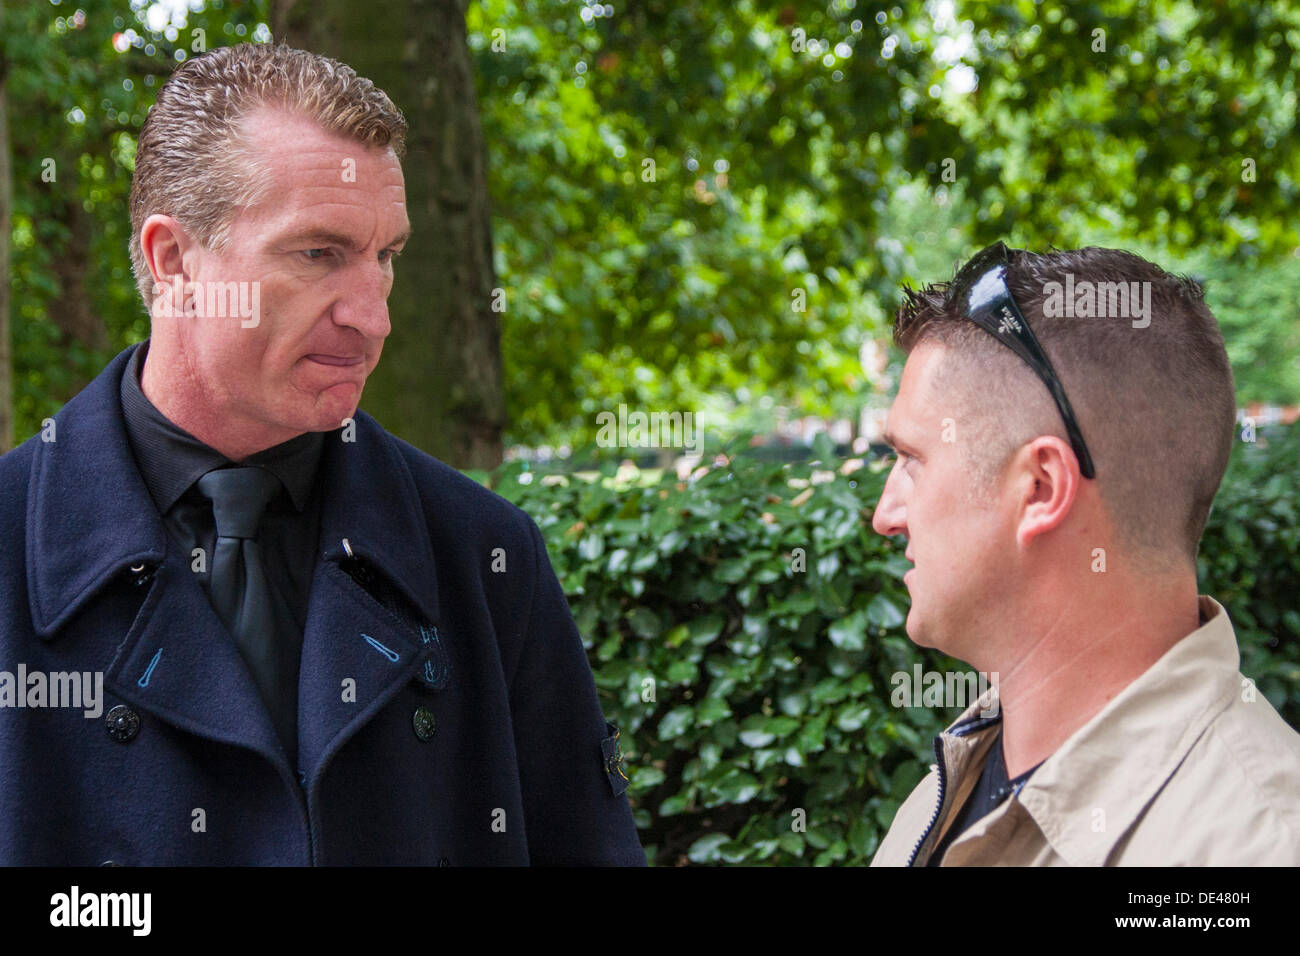 Grosvenor Square, London, UK. 11th Sep, 2013. EDL leader Stephen 'Tommy Robinson' Yaxley Lennon, right, and Kevin Carroll chat after laying flowers at the 9/11 memorial in Grosvenor Square, London on the anniversary of the terrorist attacks on America. Credit:  Paul Davey/Alamy Live News - Stock Image